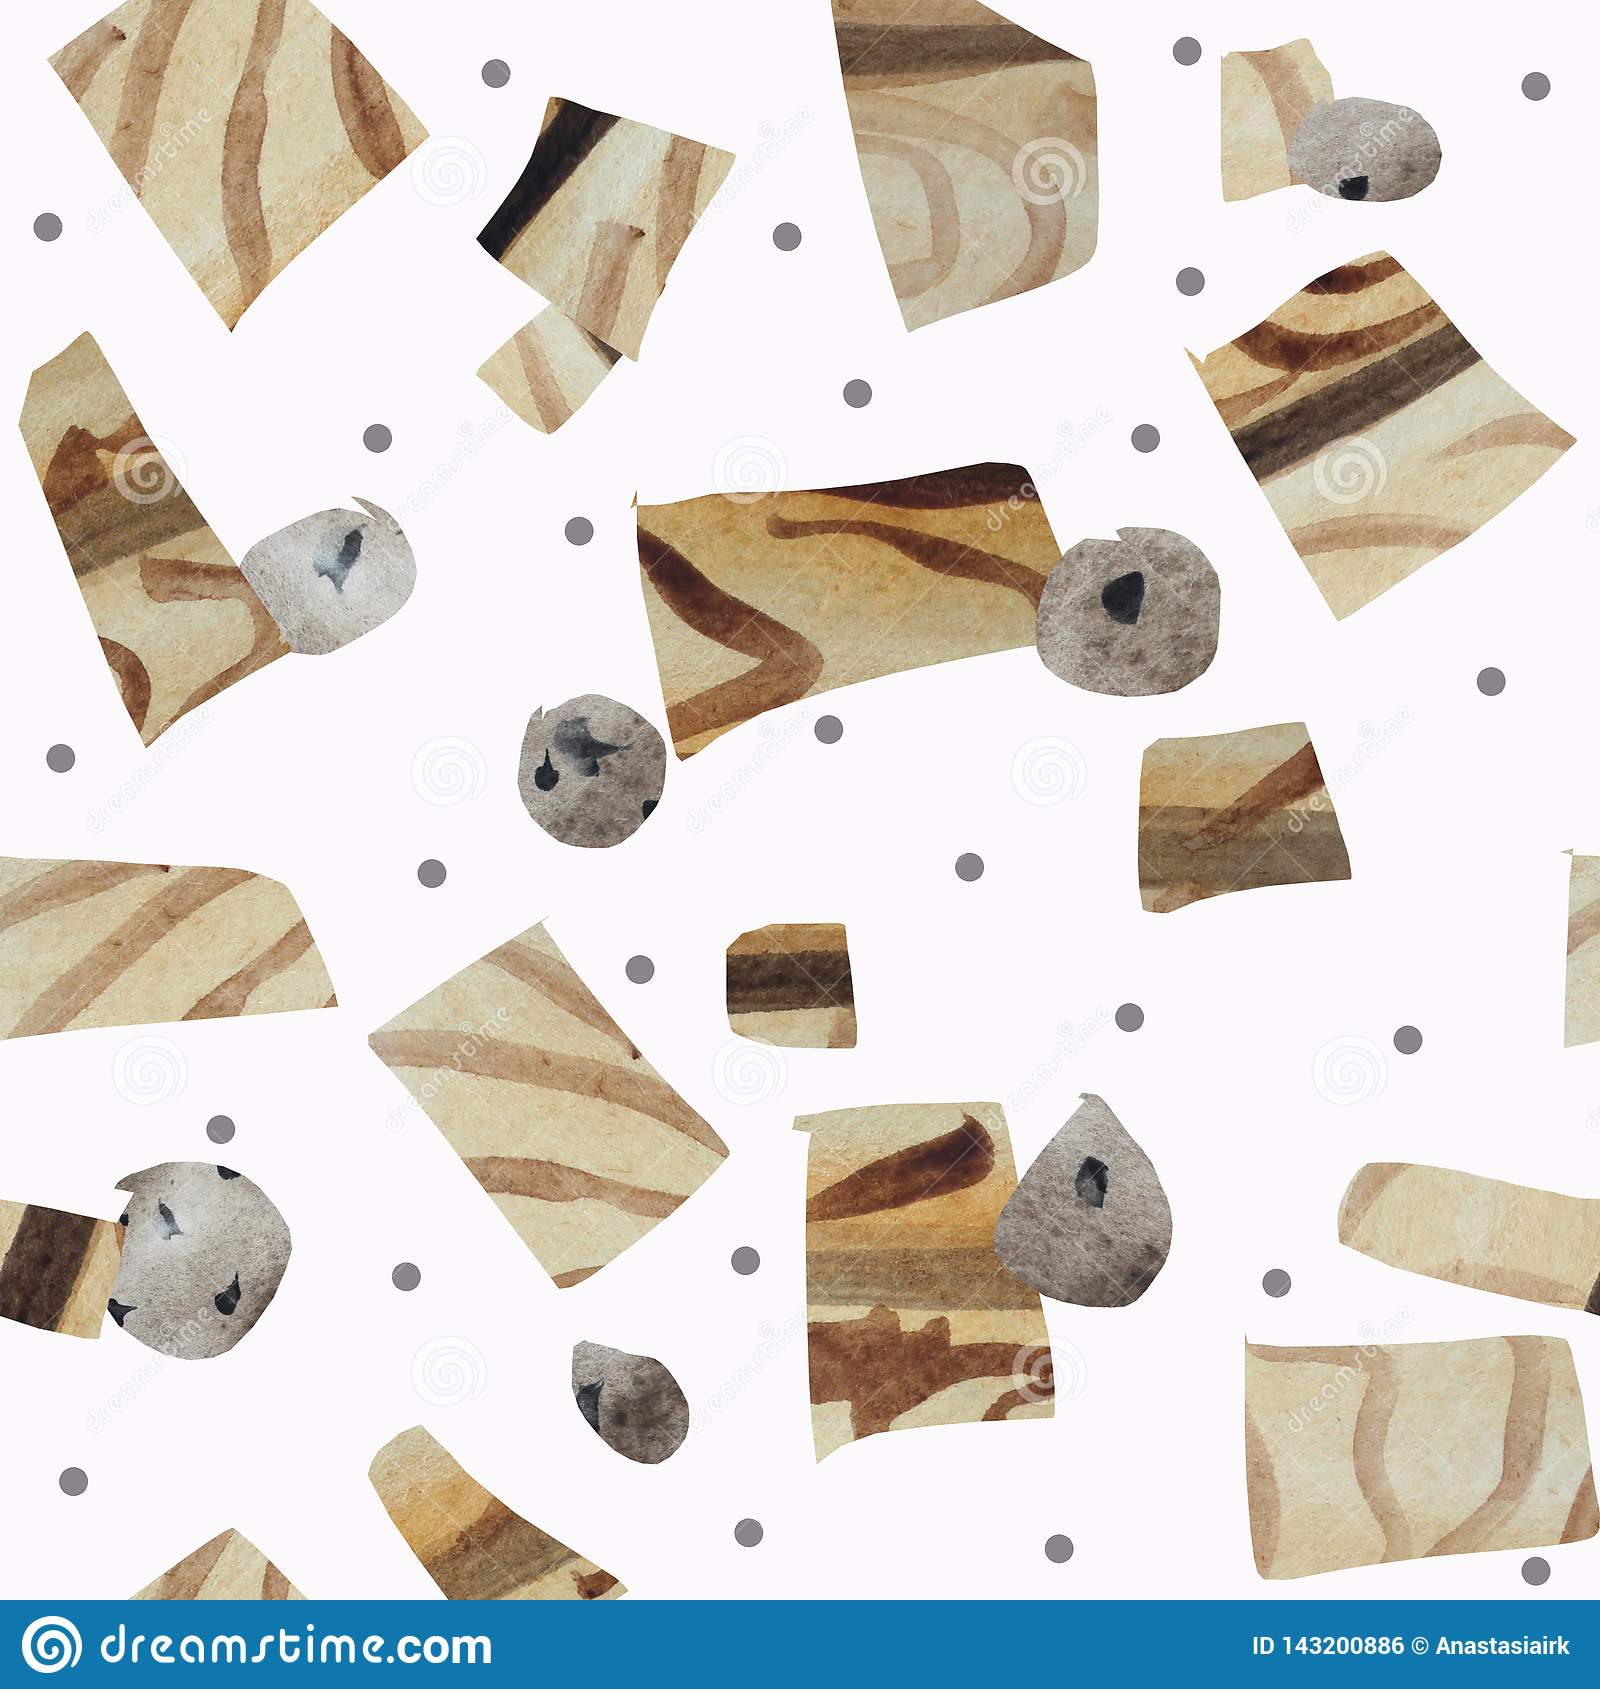 Seamless pattern of textural geometric shapes imitating wood and stones on a white background.